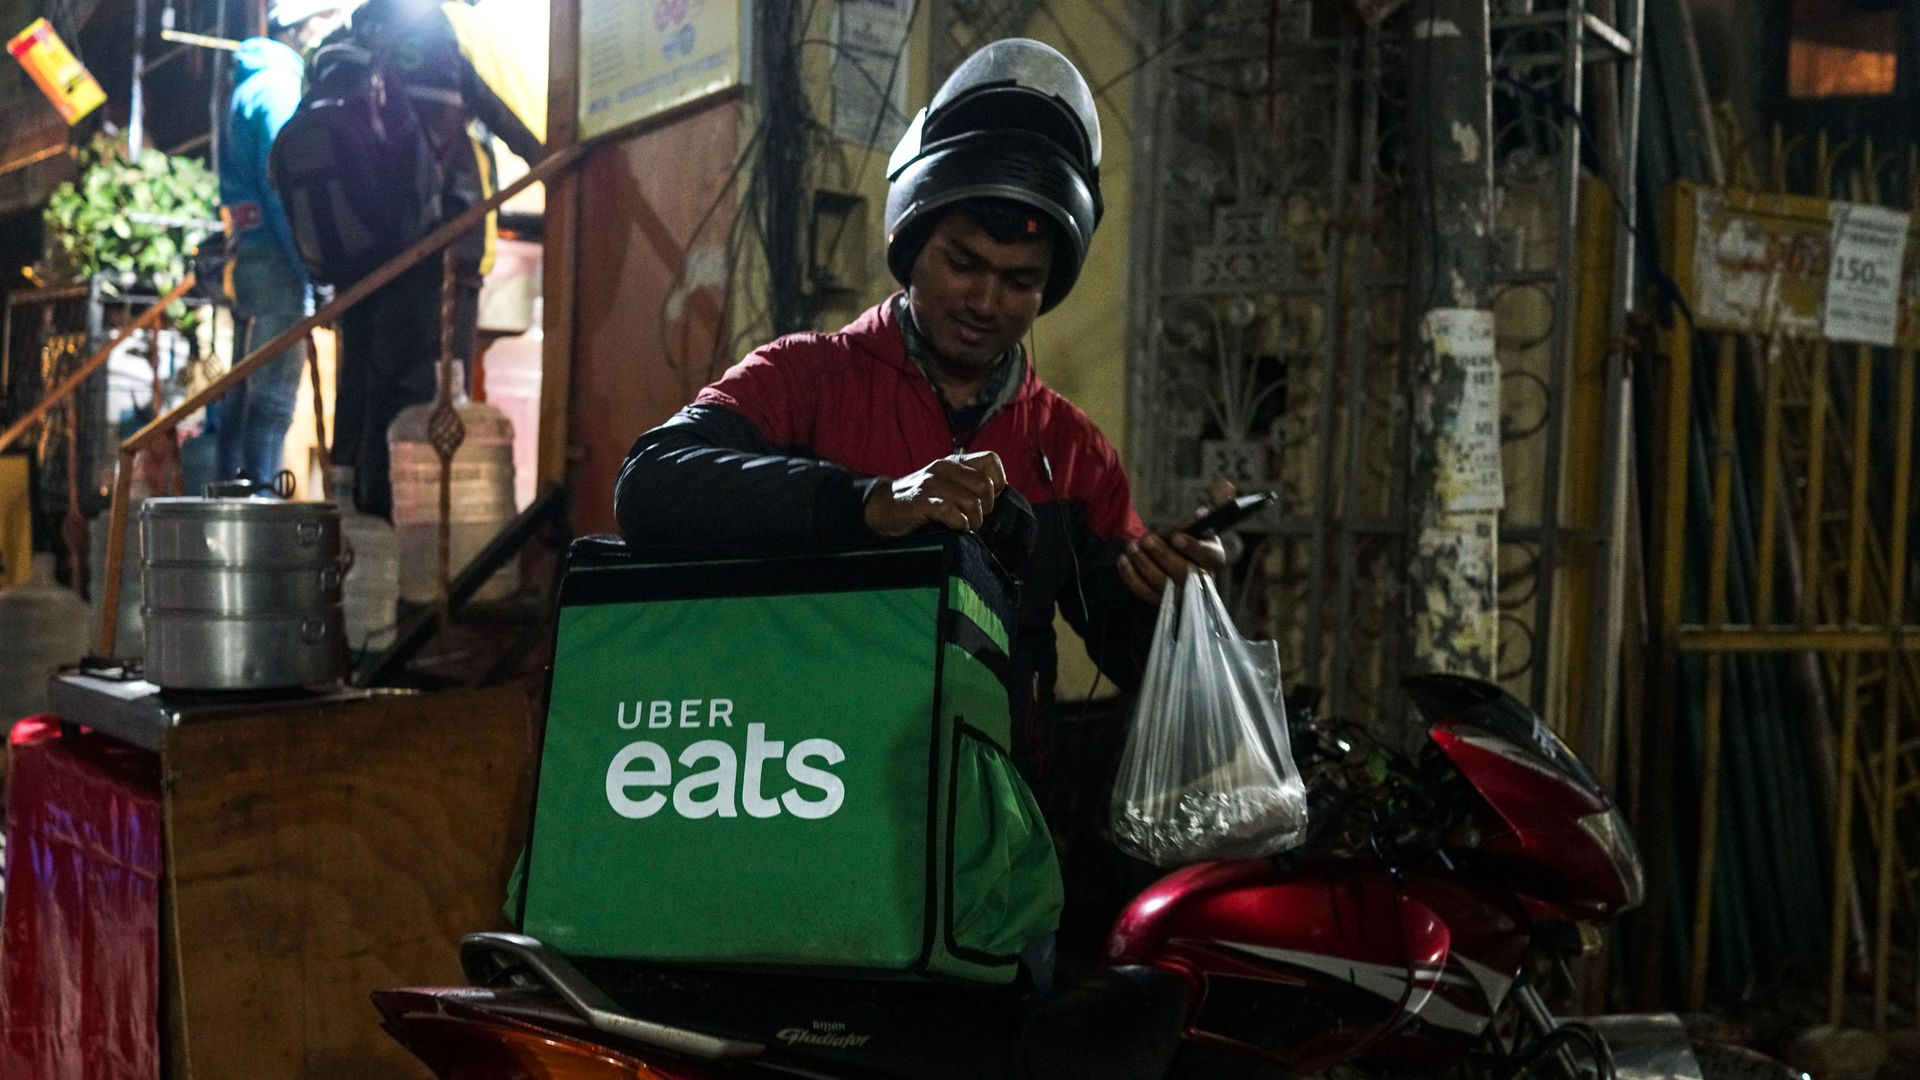 Zomato buys Uber's food delivery business in India for $350 million